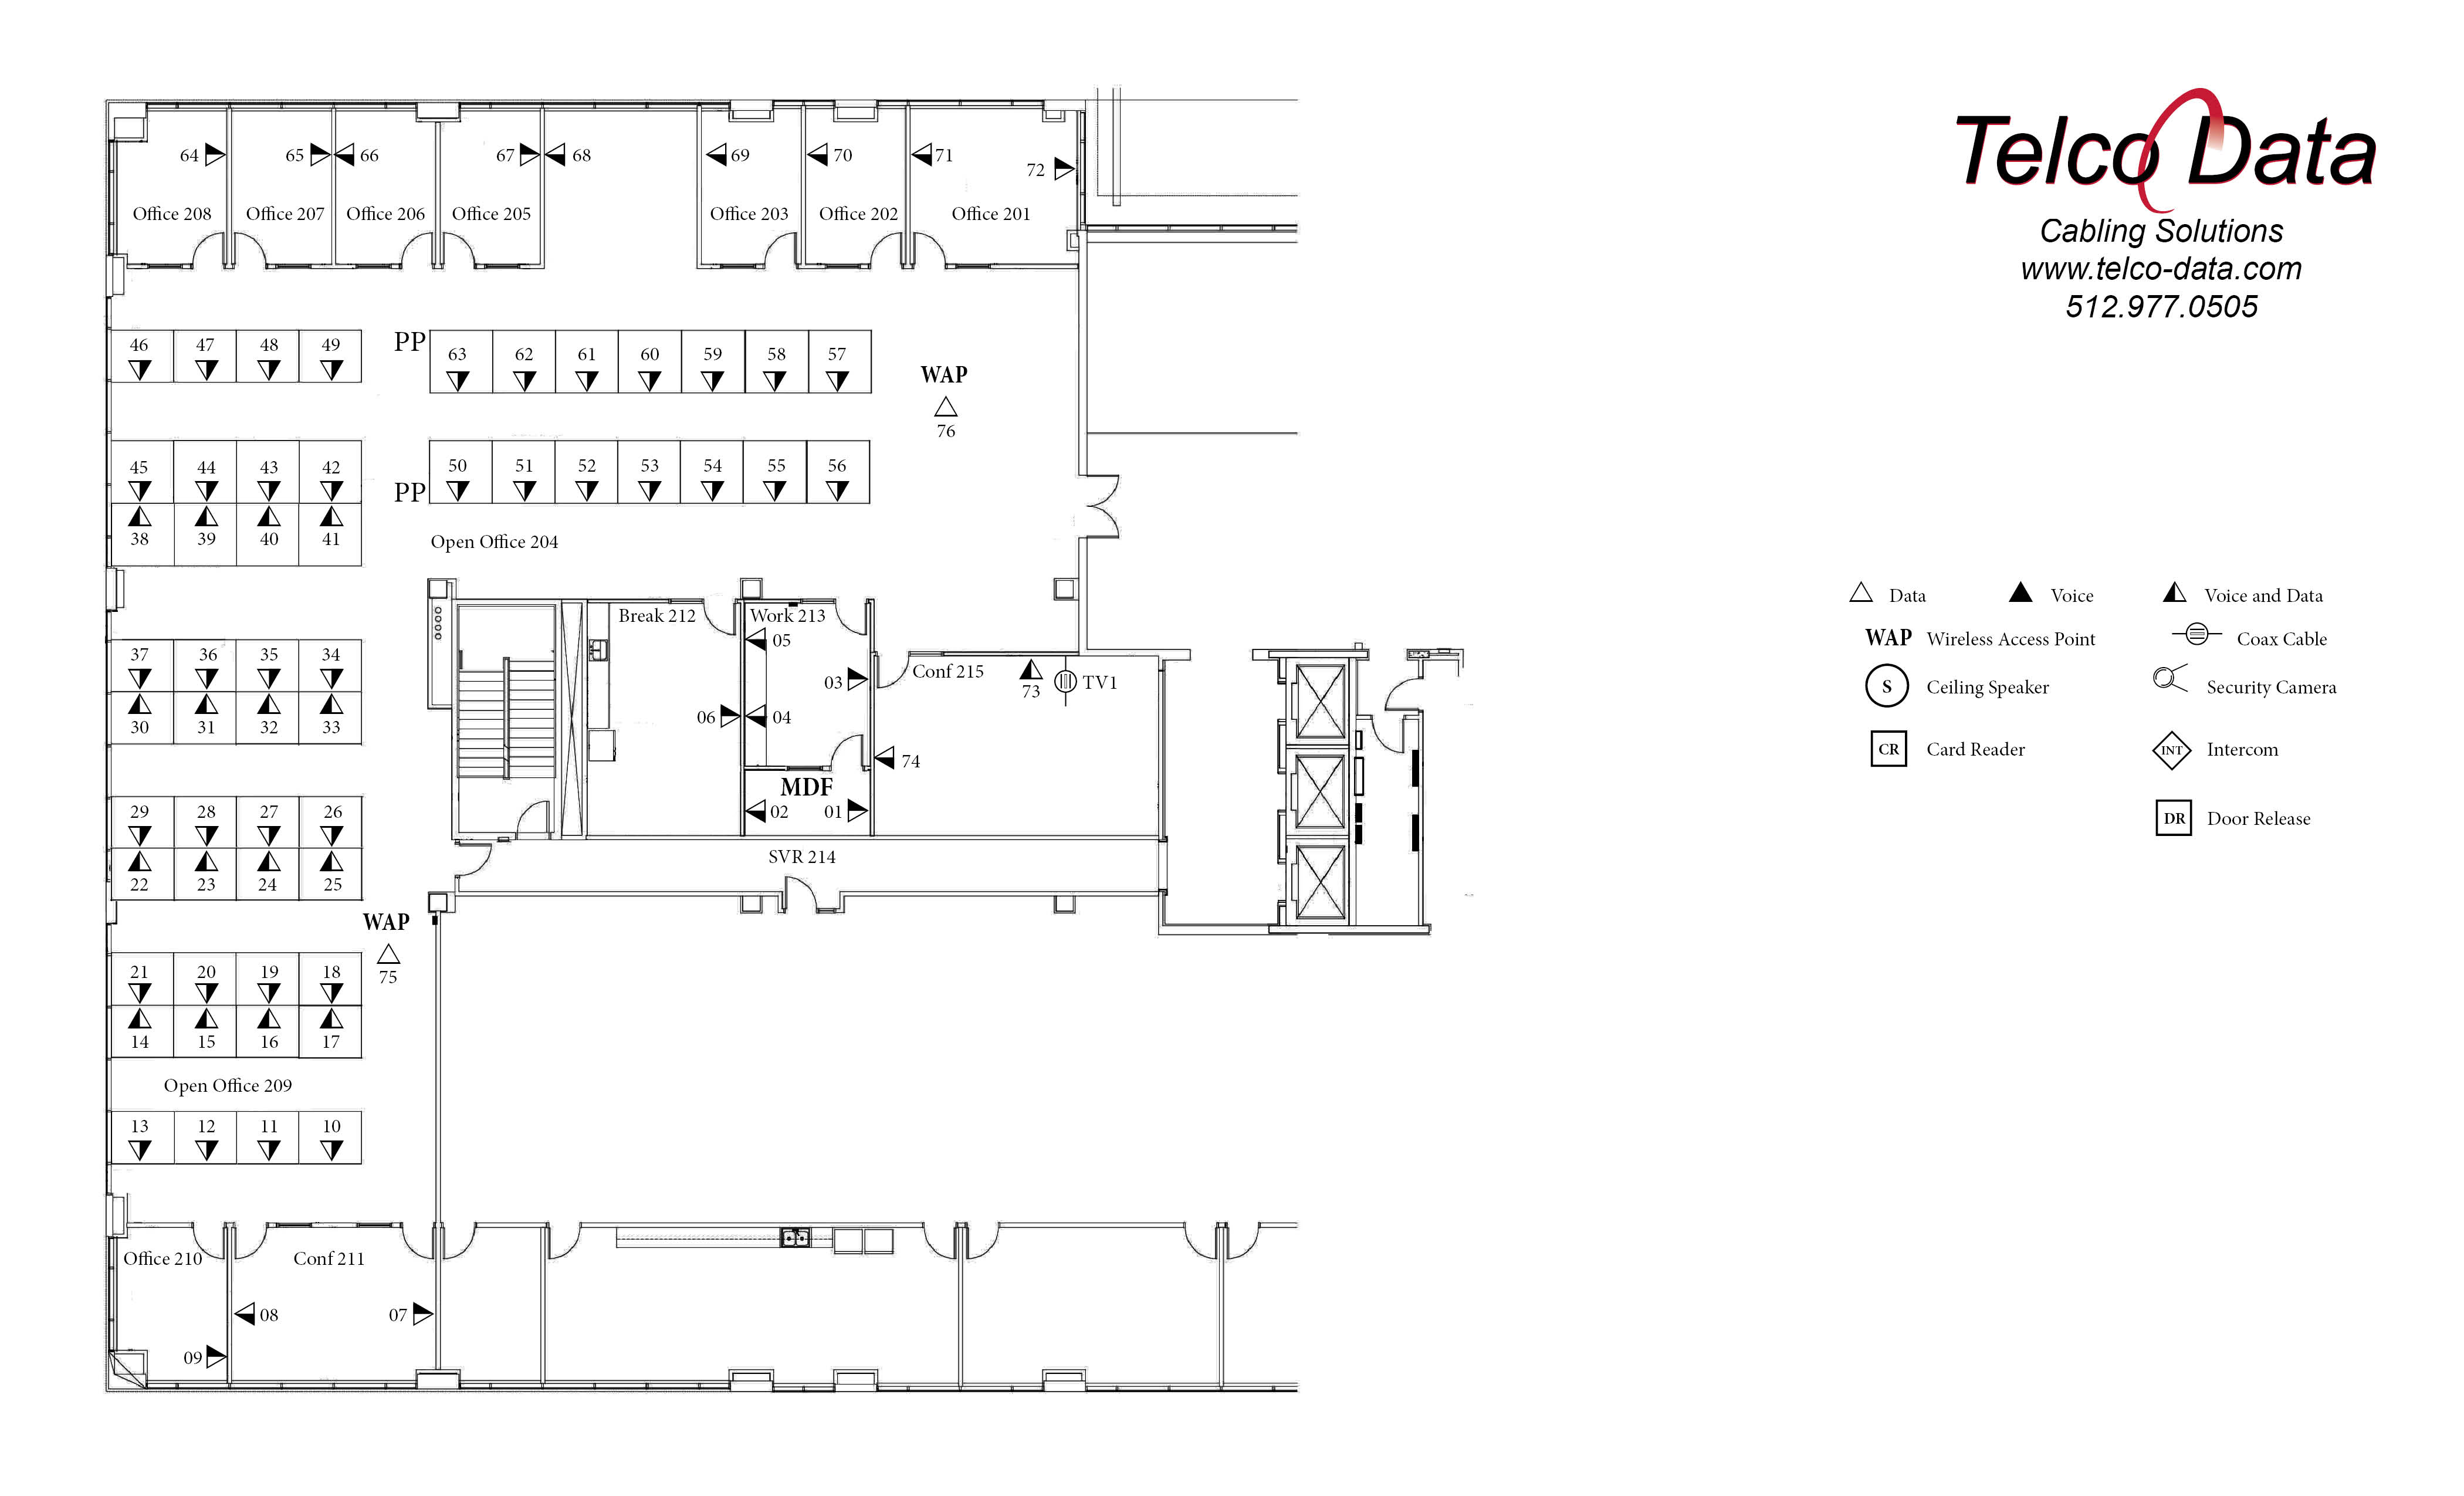 Ocean liner stateroom floor plans 350 together with Electricaltele  Plan Solution besides Verifone vx675 eftpos terminal gprs mobile likewise Exhibition Booth Design And Building 351384 2786991 also House And Land Packages 2. on telecommunications floor plans